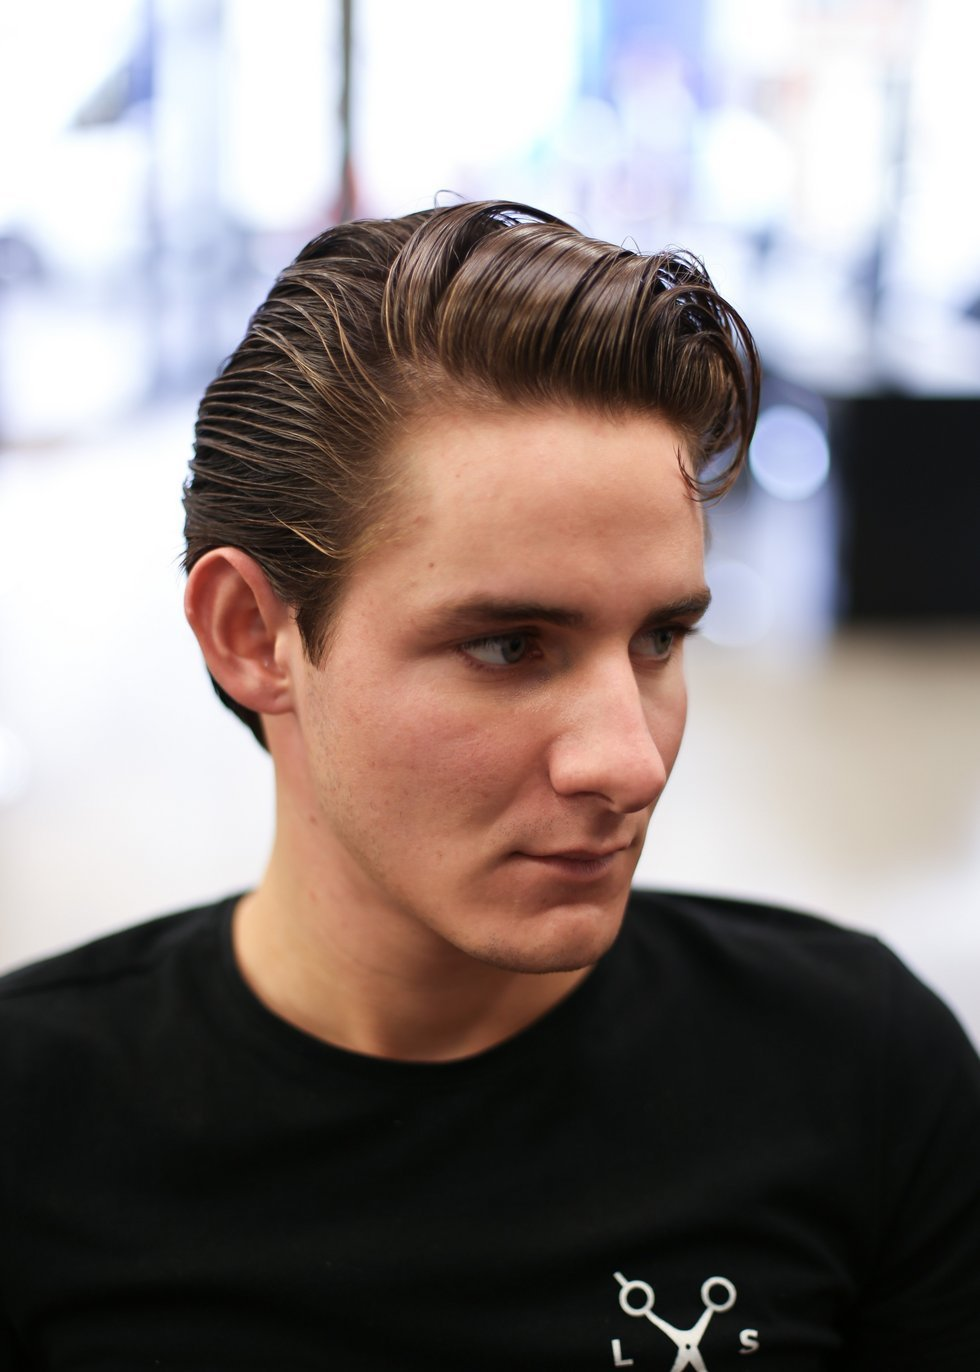 The Best How To Recreate Alex Turner's Pompadour At Home By Yourself Pictures